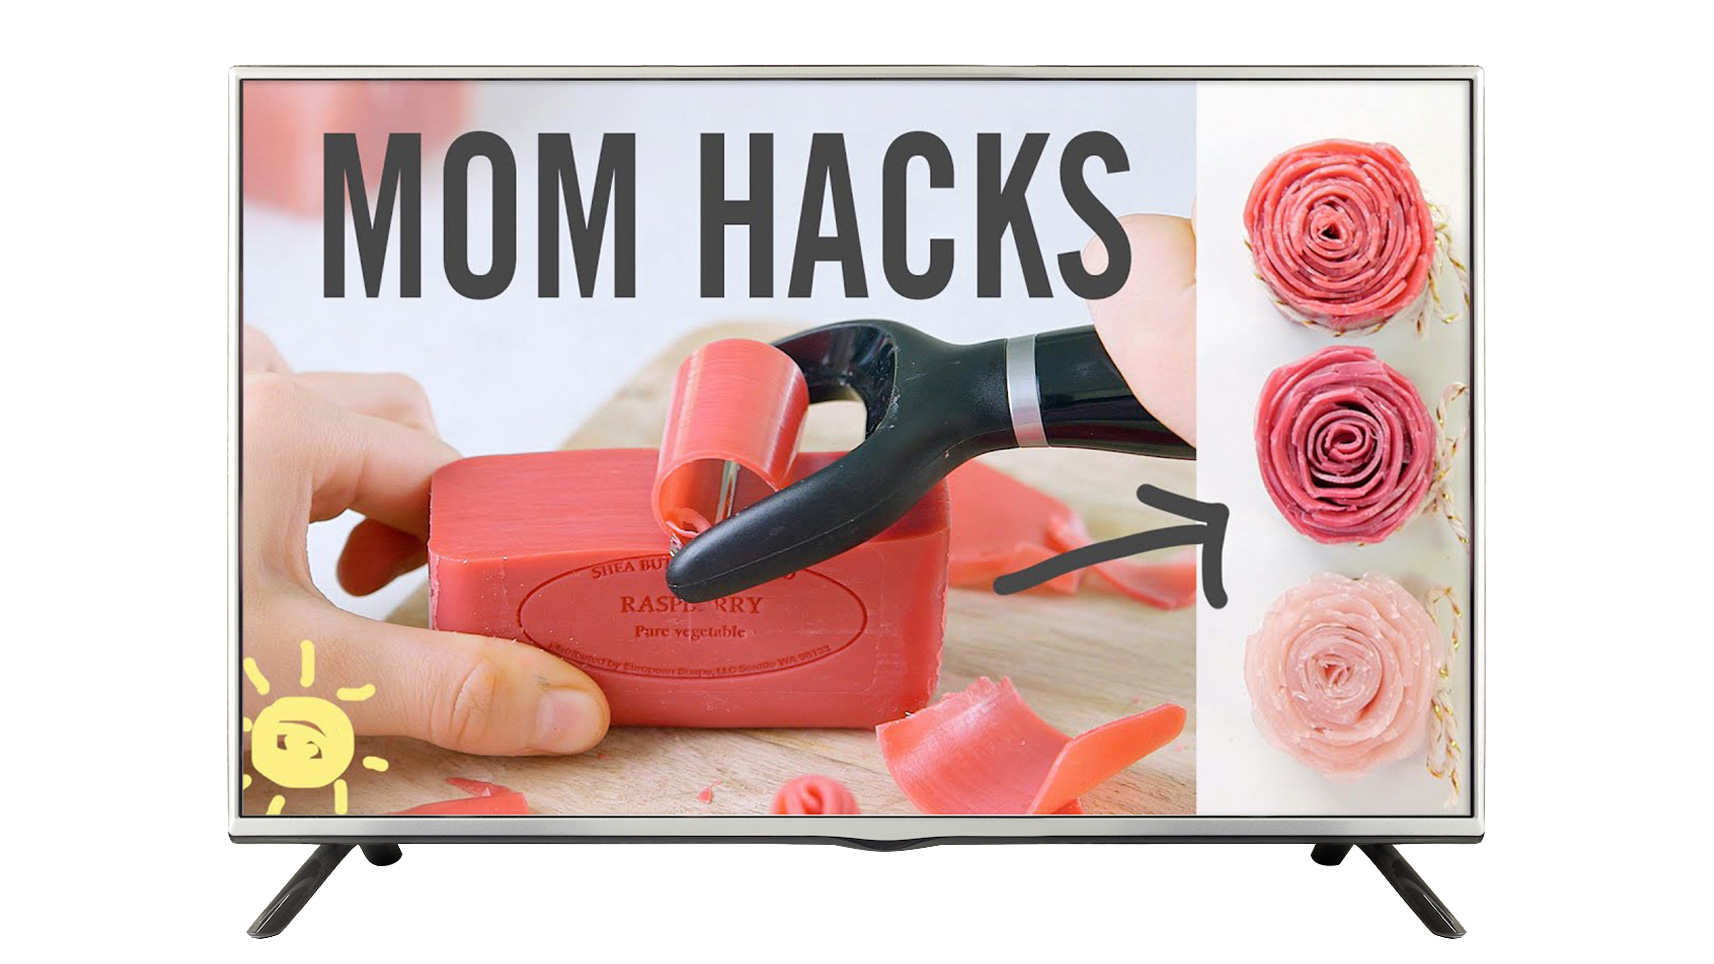 One of the sponsorships allows advertisers to own popular YouTube channels, like WhatsUpMom, during seasonal events like Mother's Day.